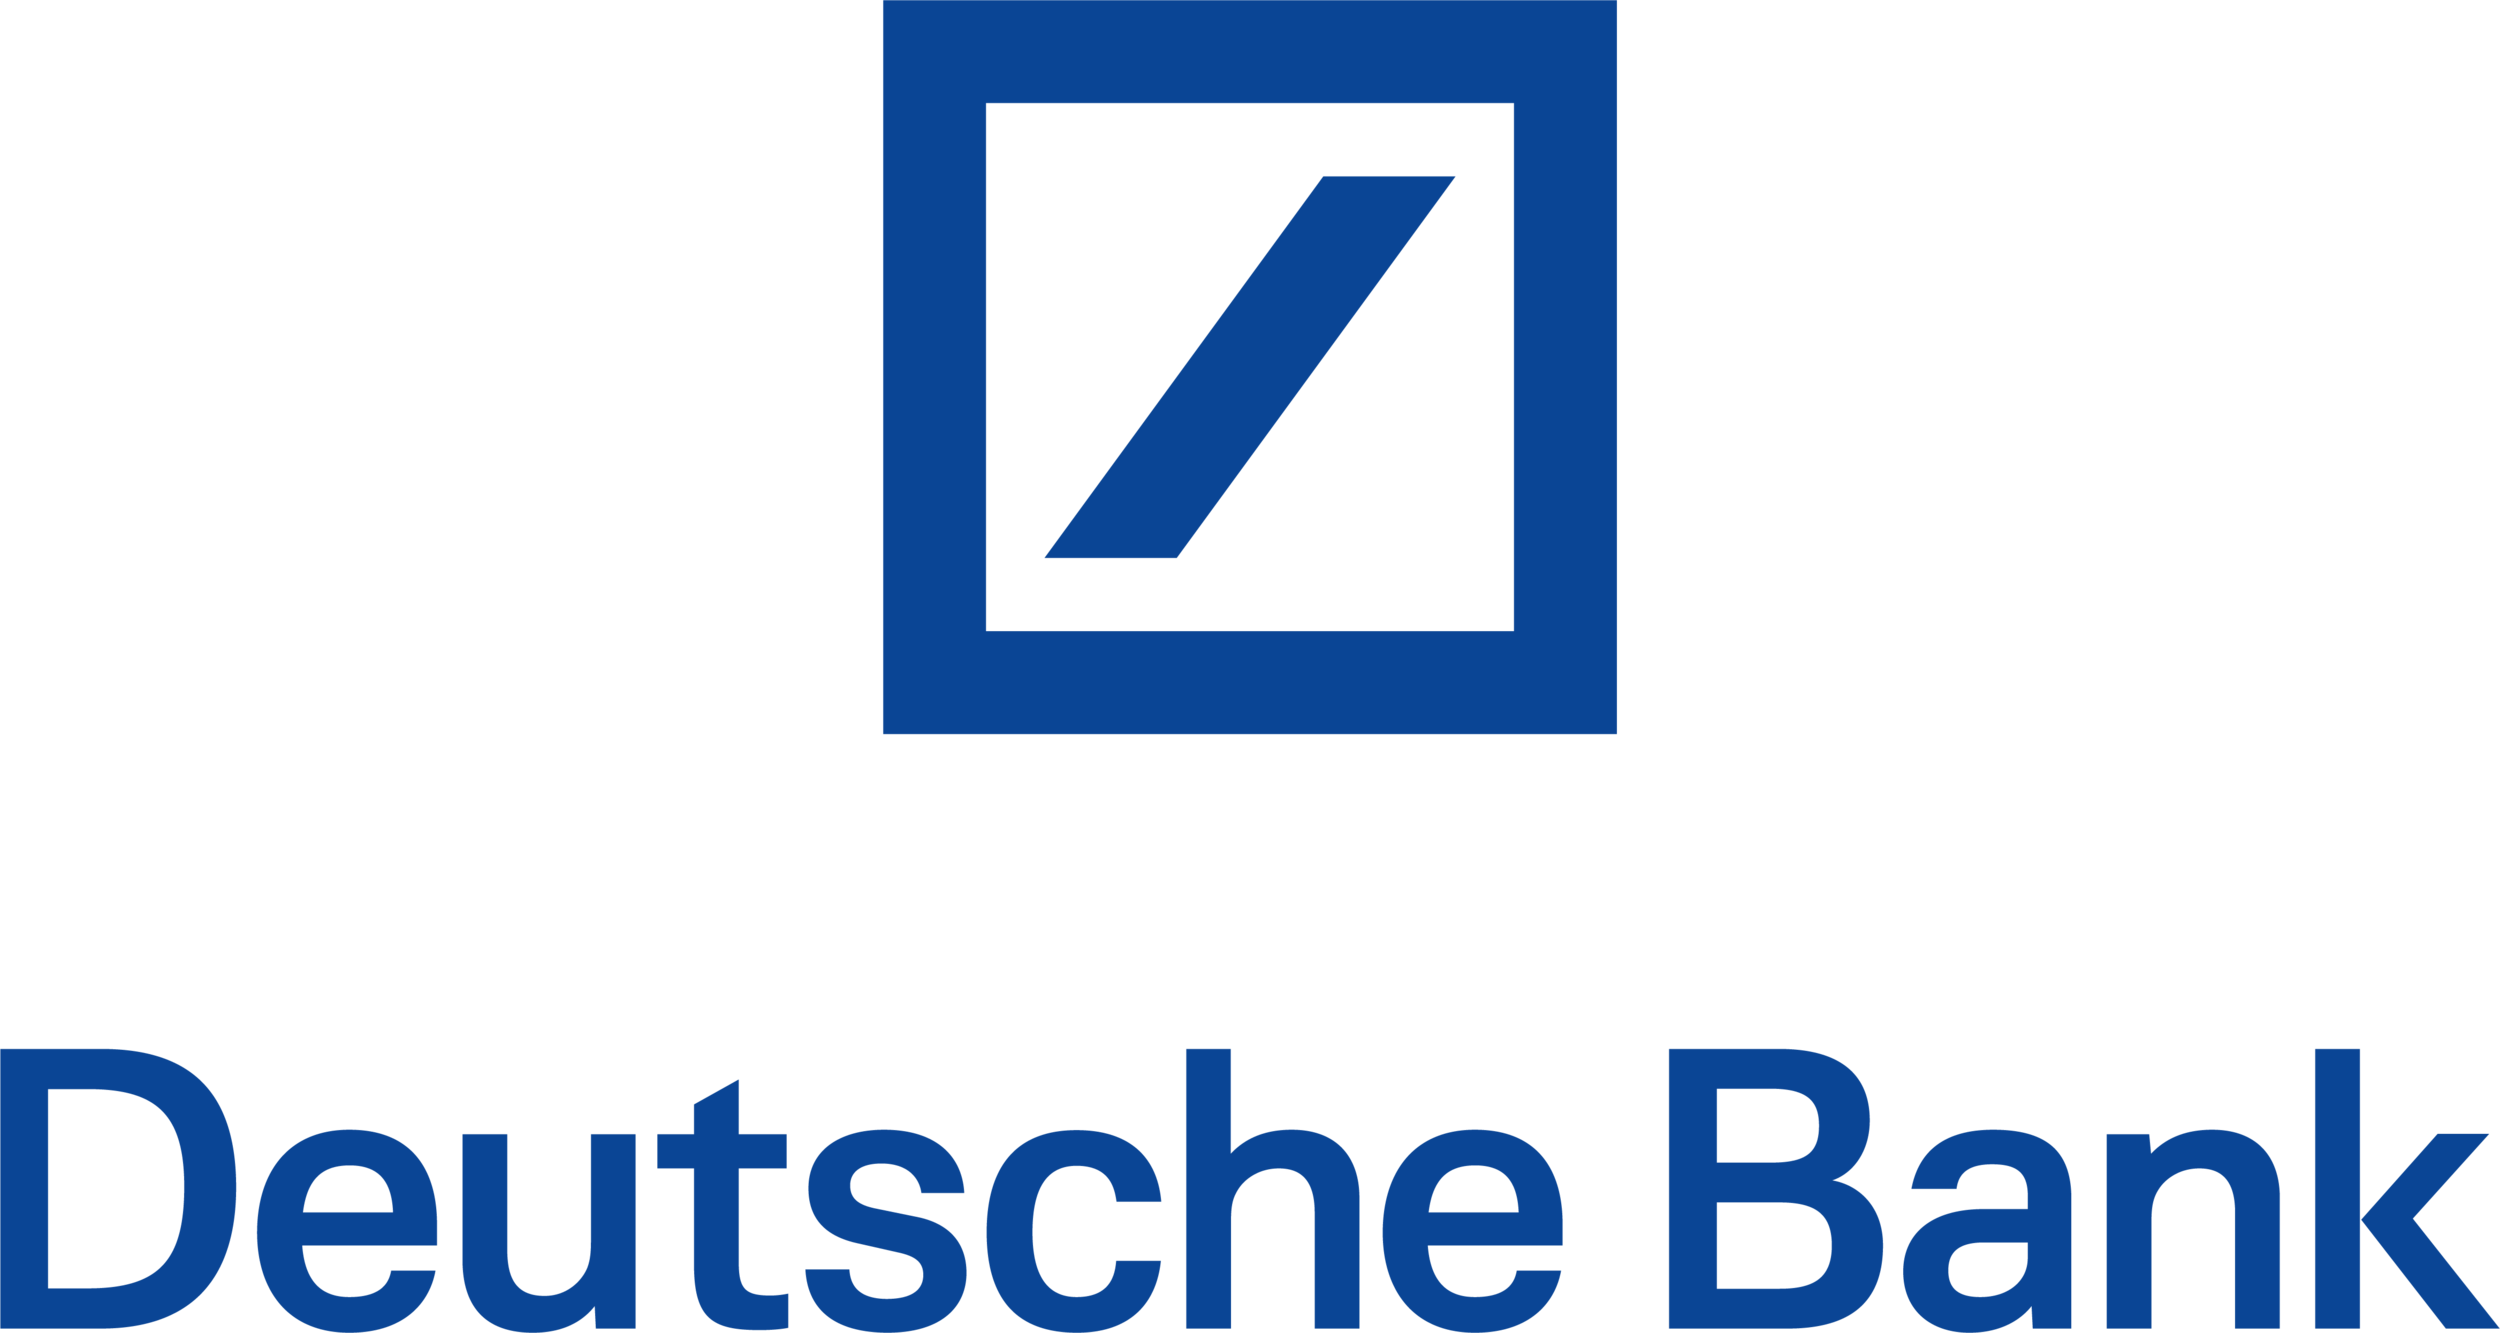 logotype_dbblue_centered.png